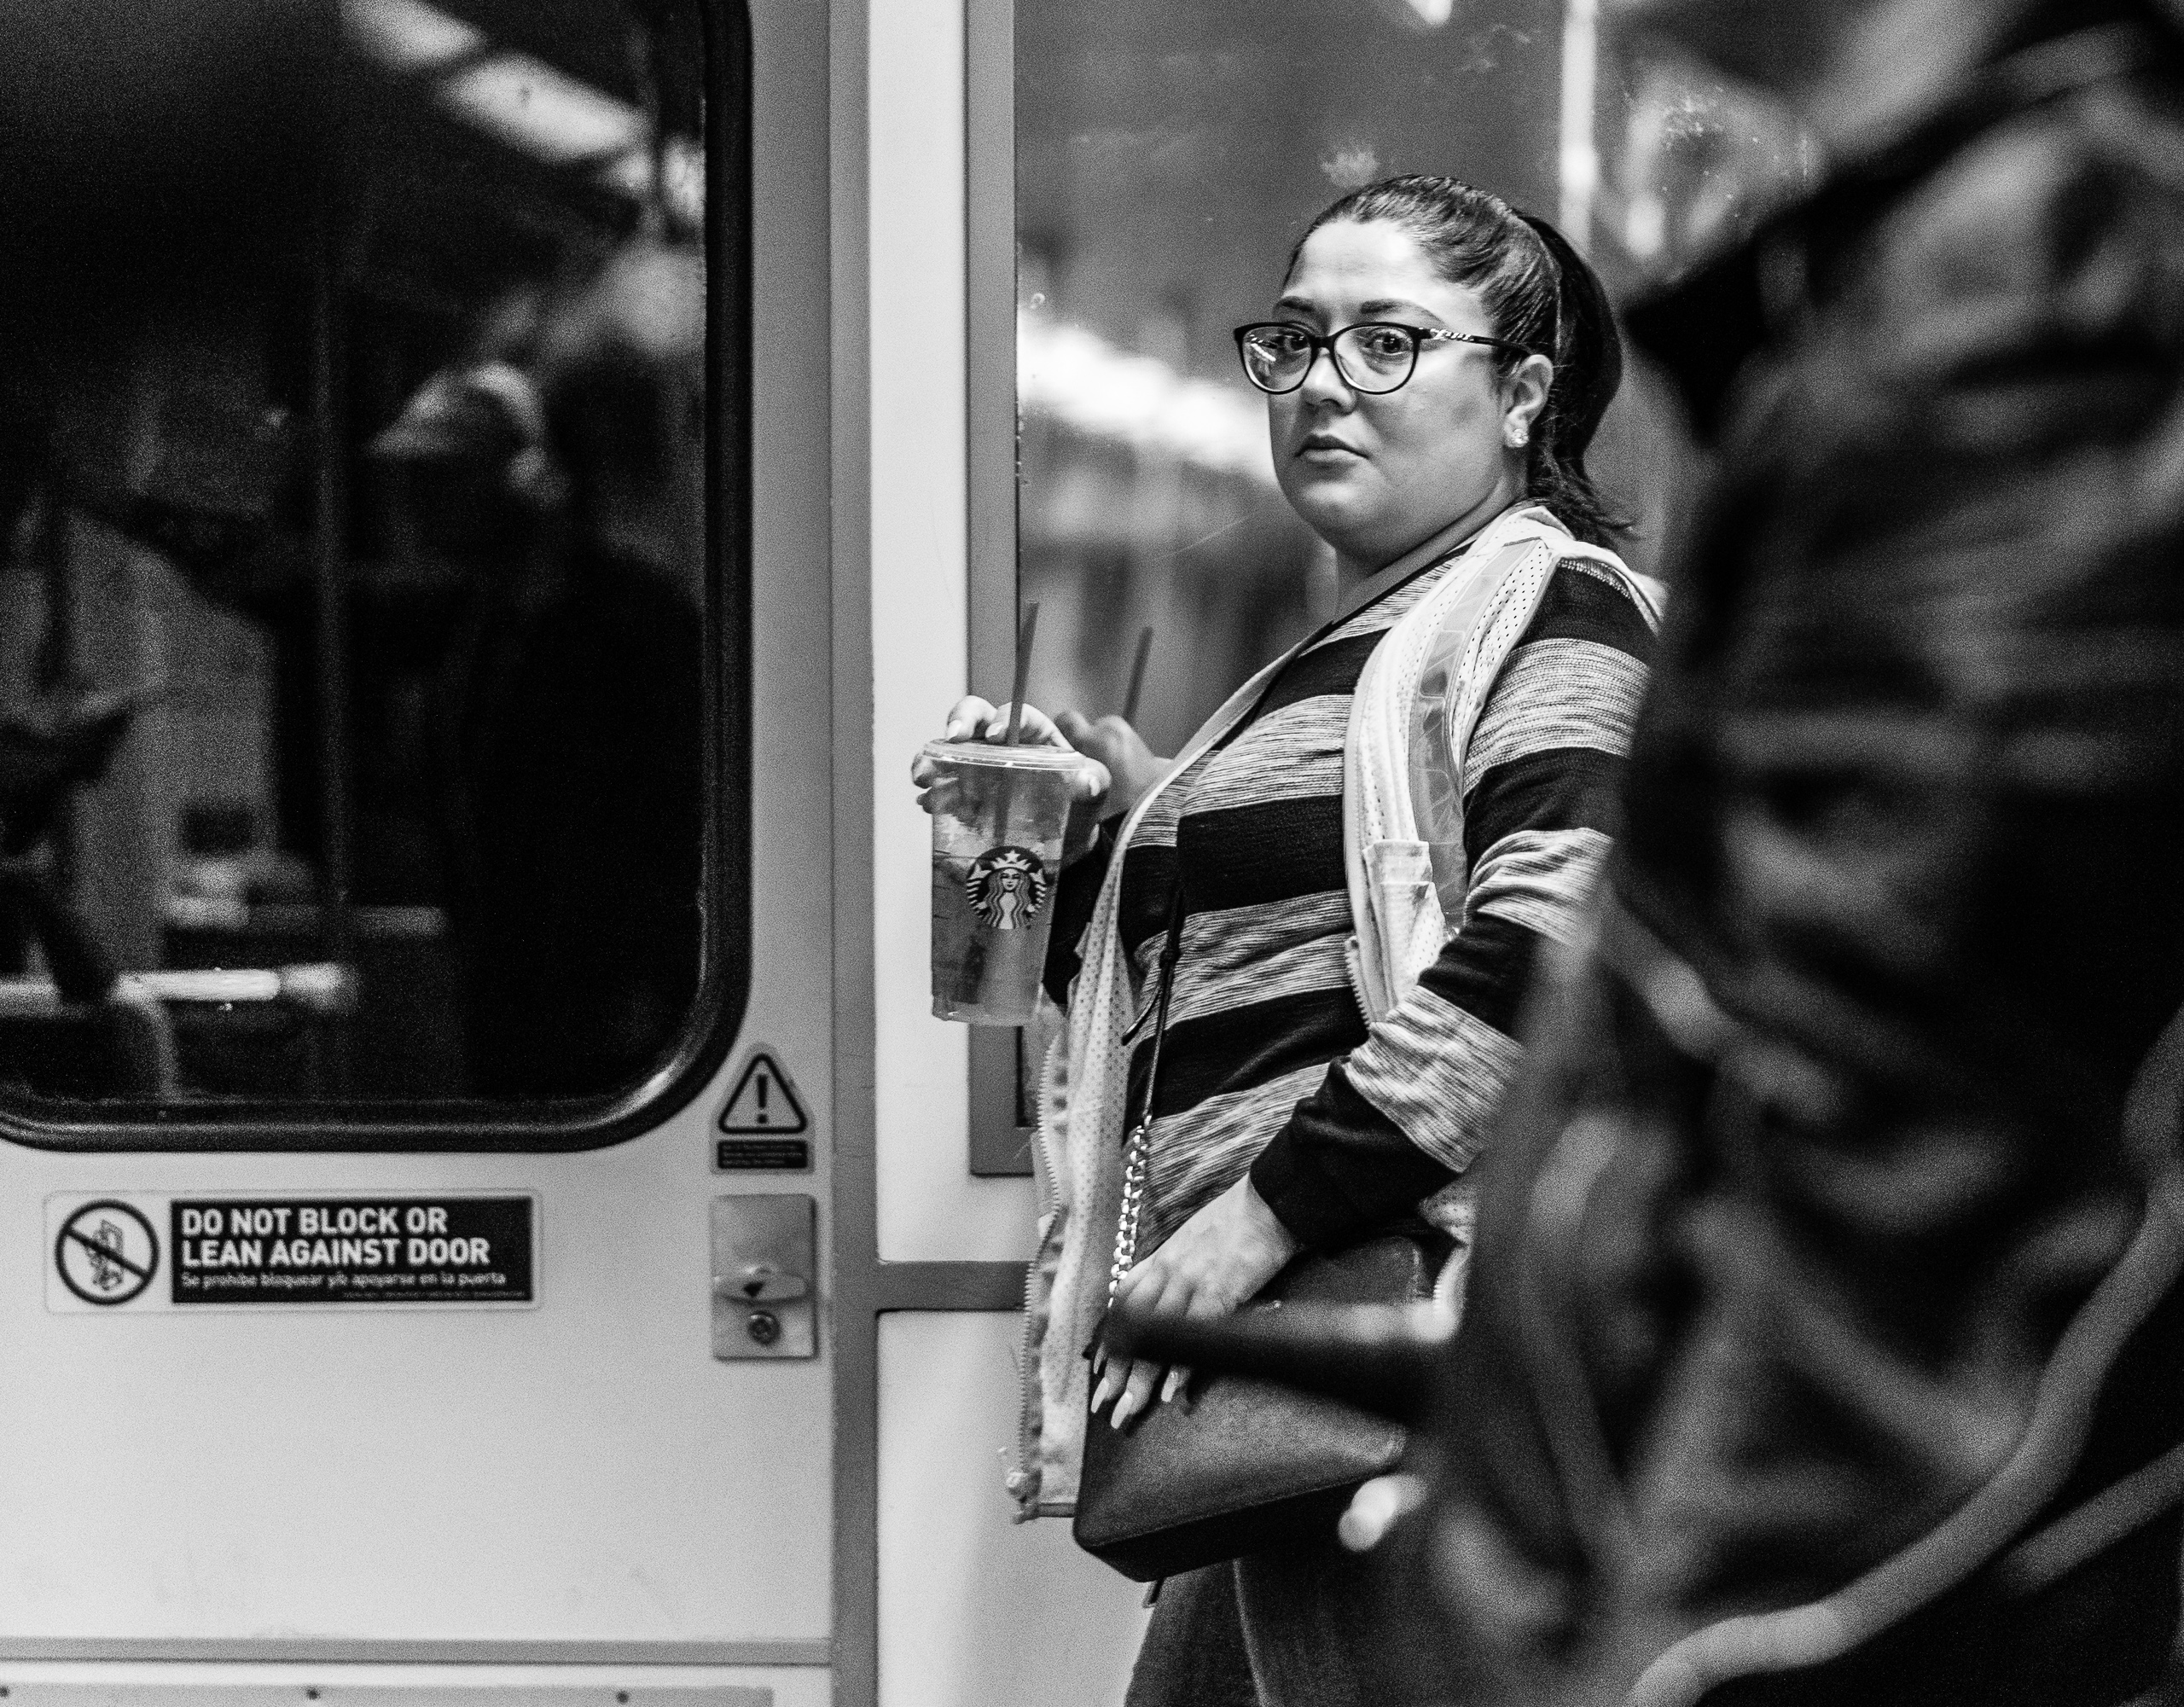 a woman stands at the end of a Metro Red Line Train Car and holds a Starbucks cup in her hand